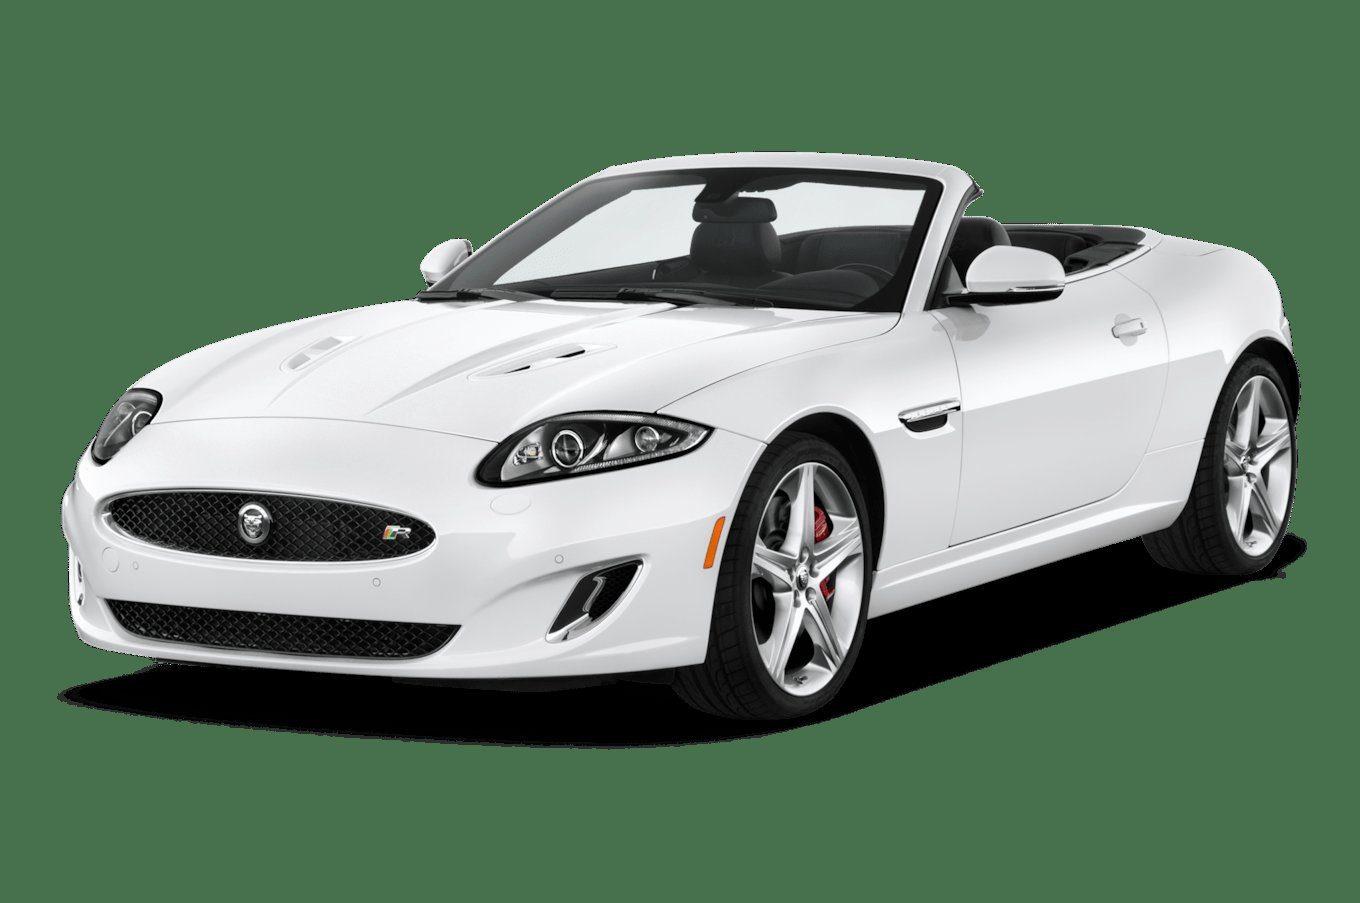 New 2014 Jaguar Xk Series Reviews And Rating Motor Trend On This Month